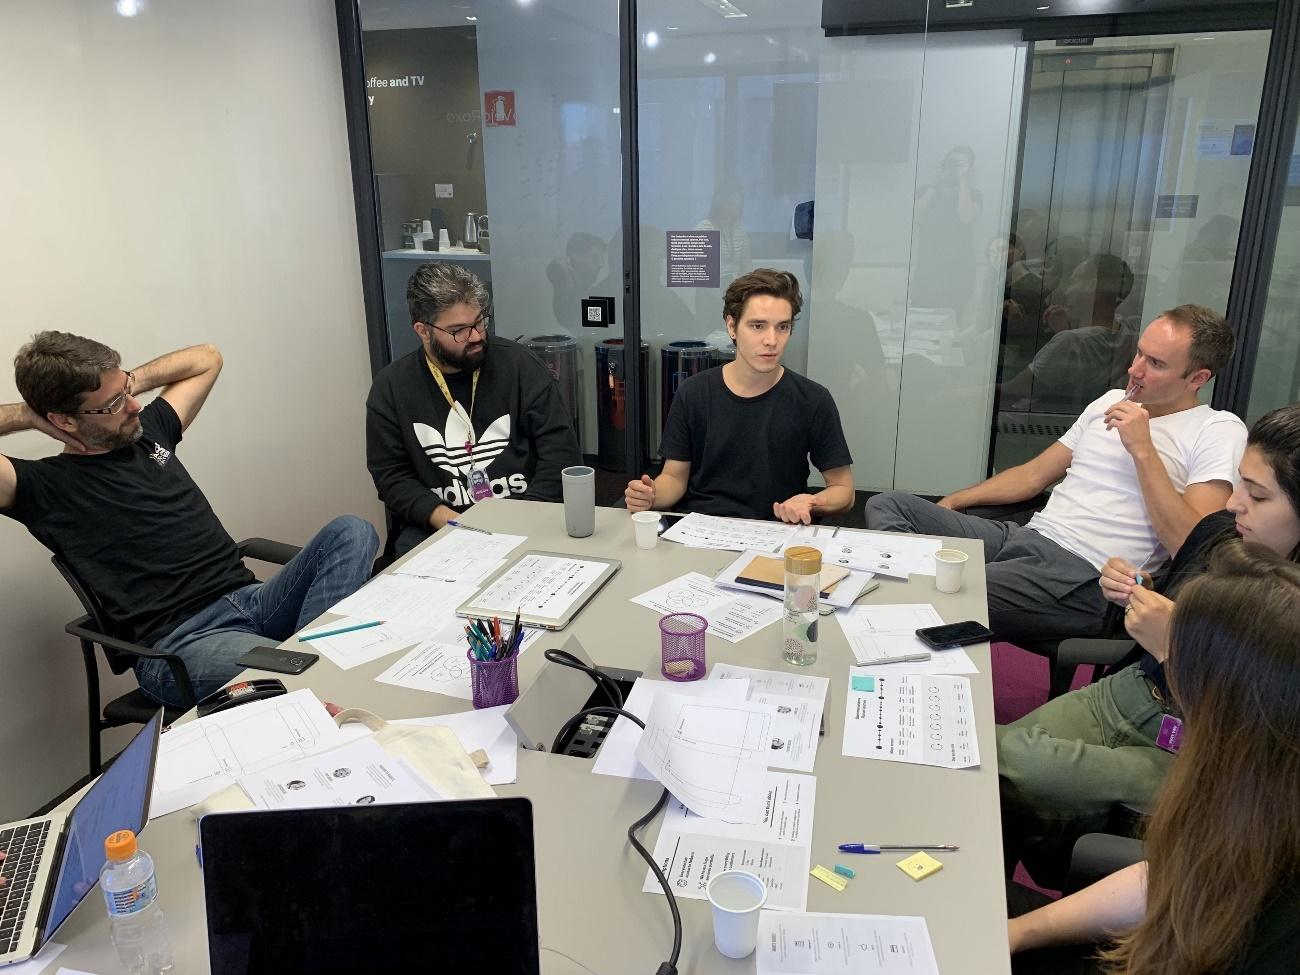 Six people sitting around a table filled with pieces of paper